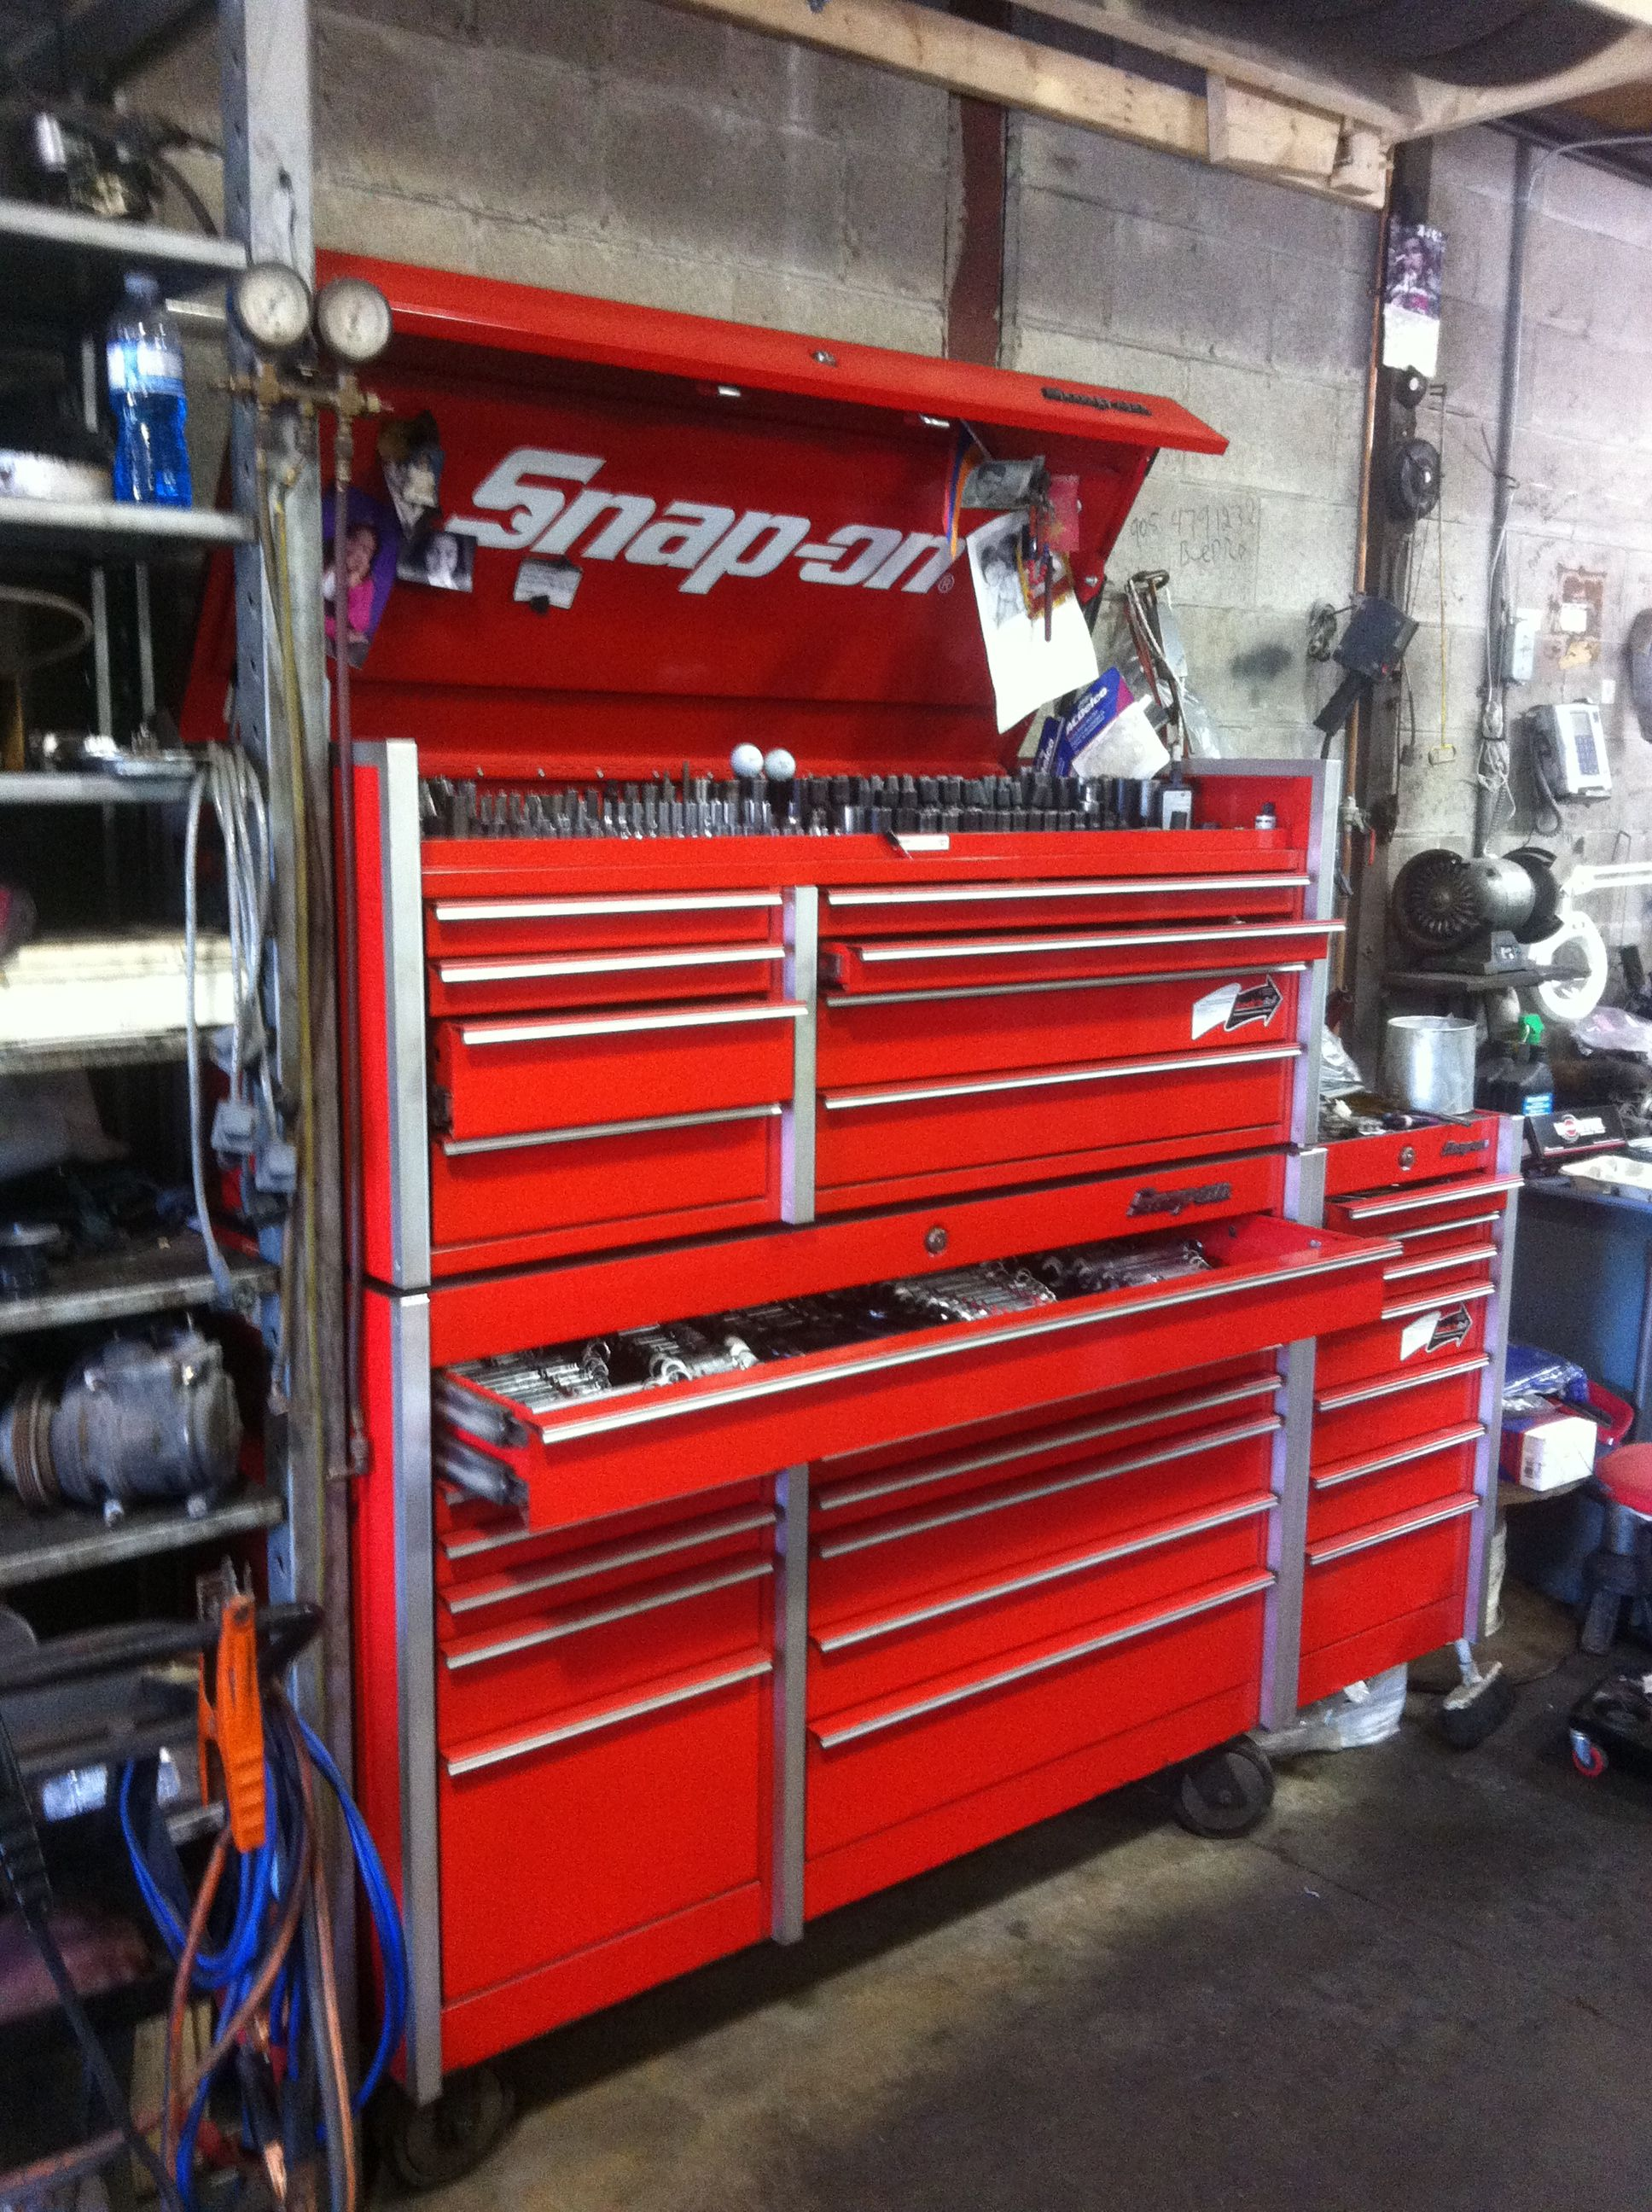 mechanic tool box pictures Google Search Mechanic tool